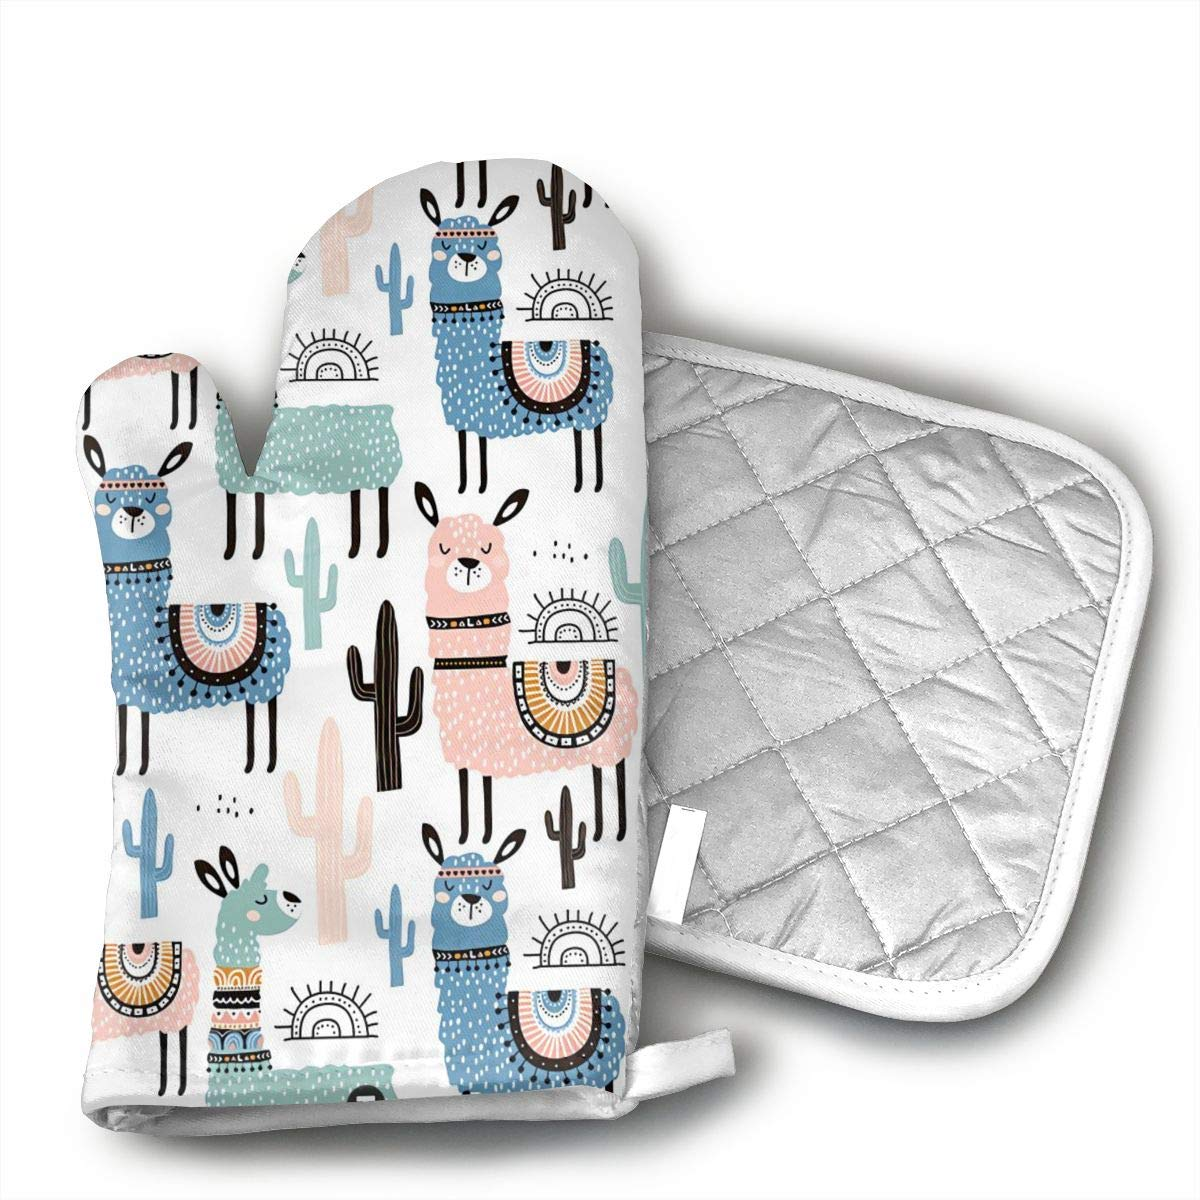 Llama Cactus Oven Mitts and Pot Holders Set with Polyester Cotton Non-Slip Grip, Heat Resistant, Oven Gloves for BBQ Cooking Baking, Grilling